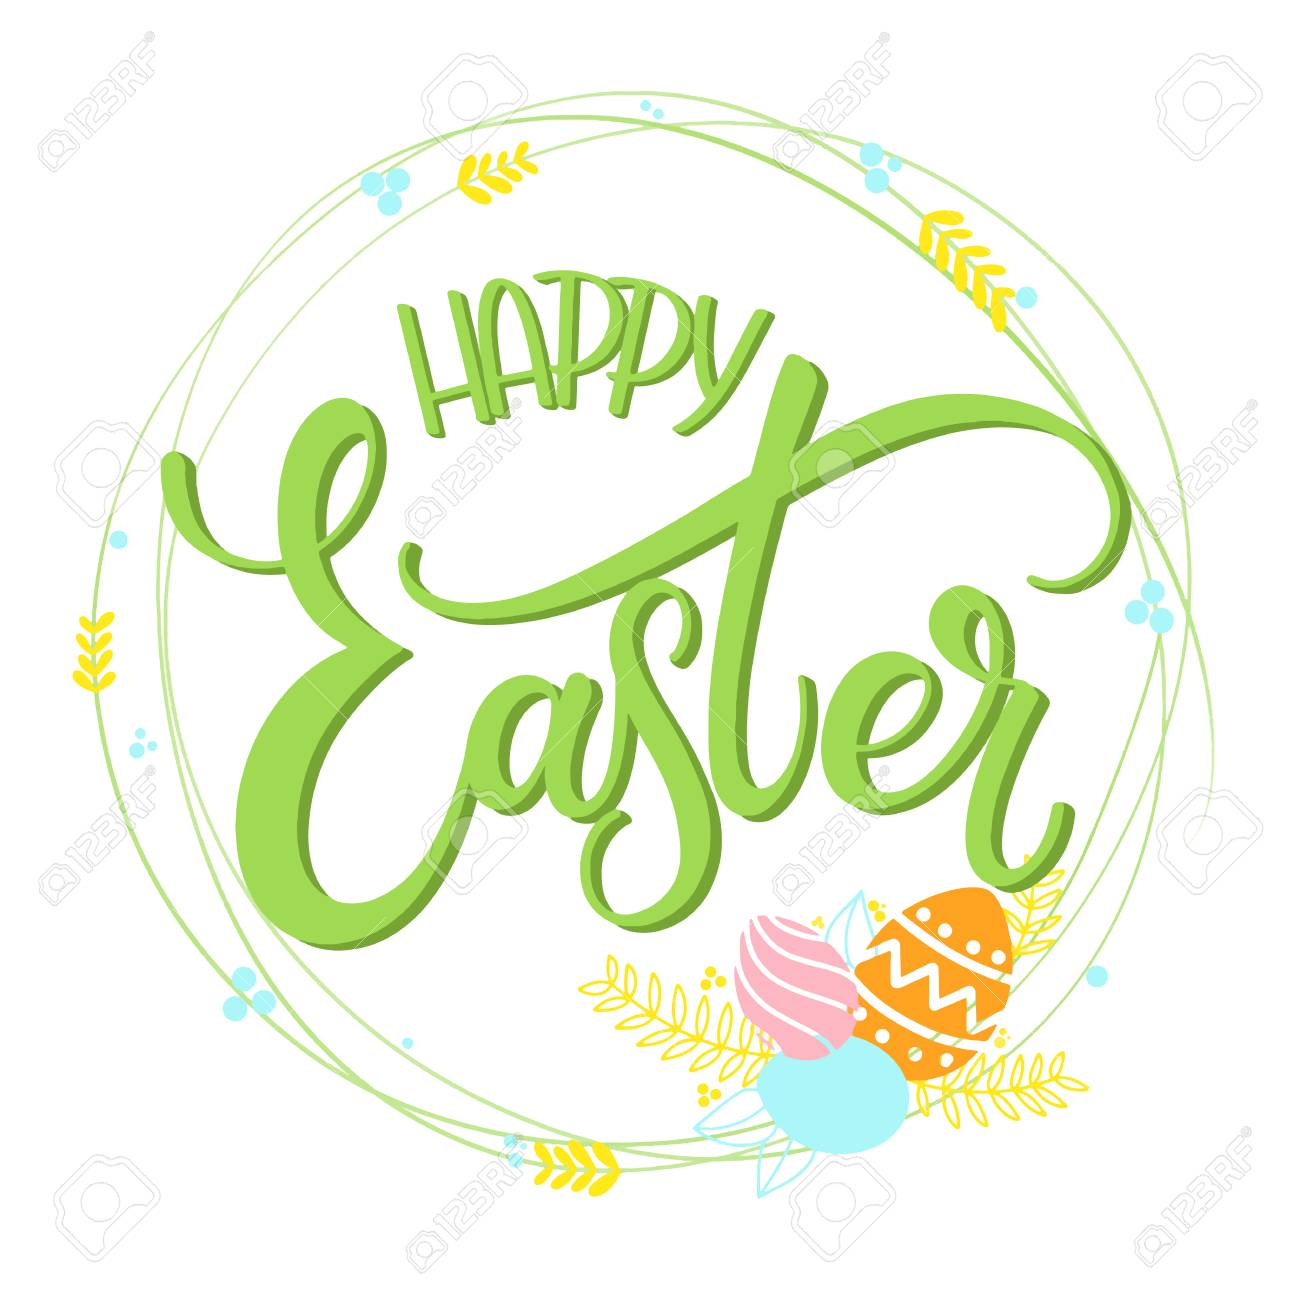 Happy easter colorful lettering hand written easter phrases hand written easter phrases seasons greetings stock vector 96851901 m4hsunfo